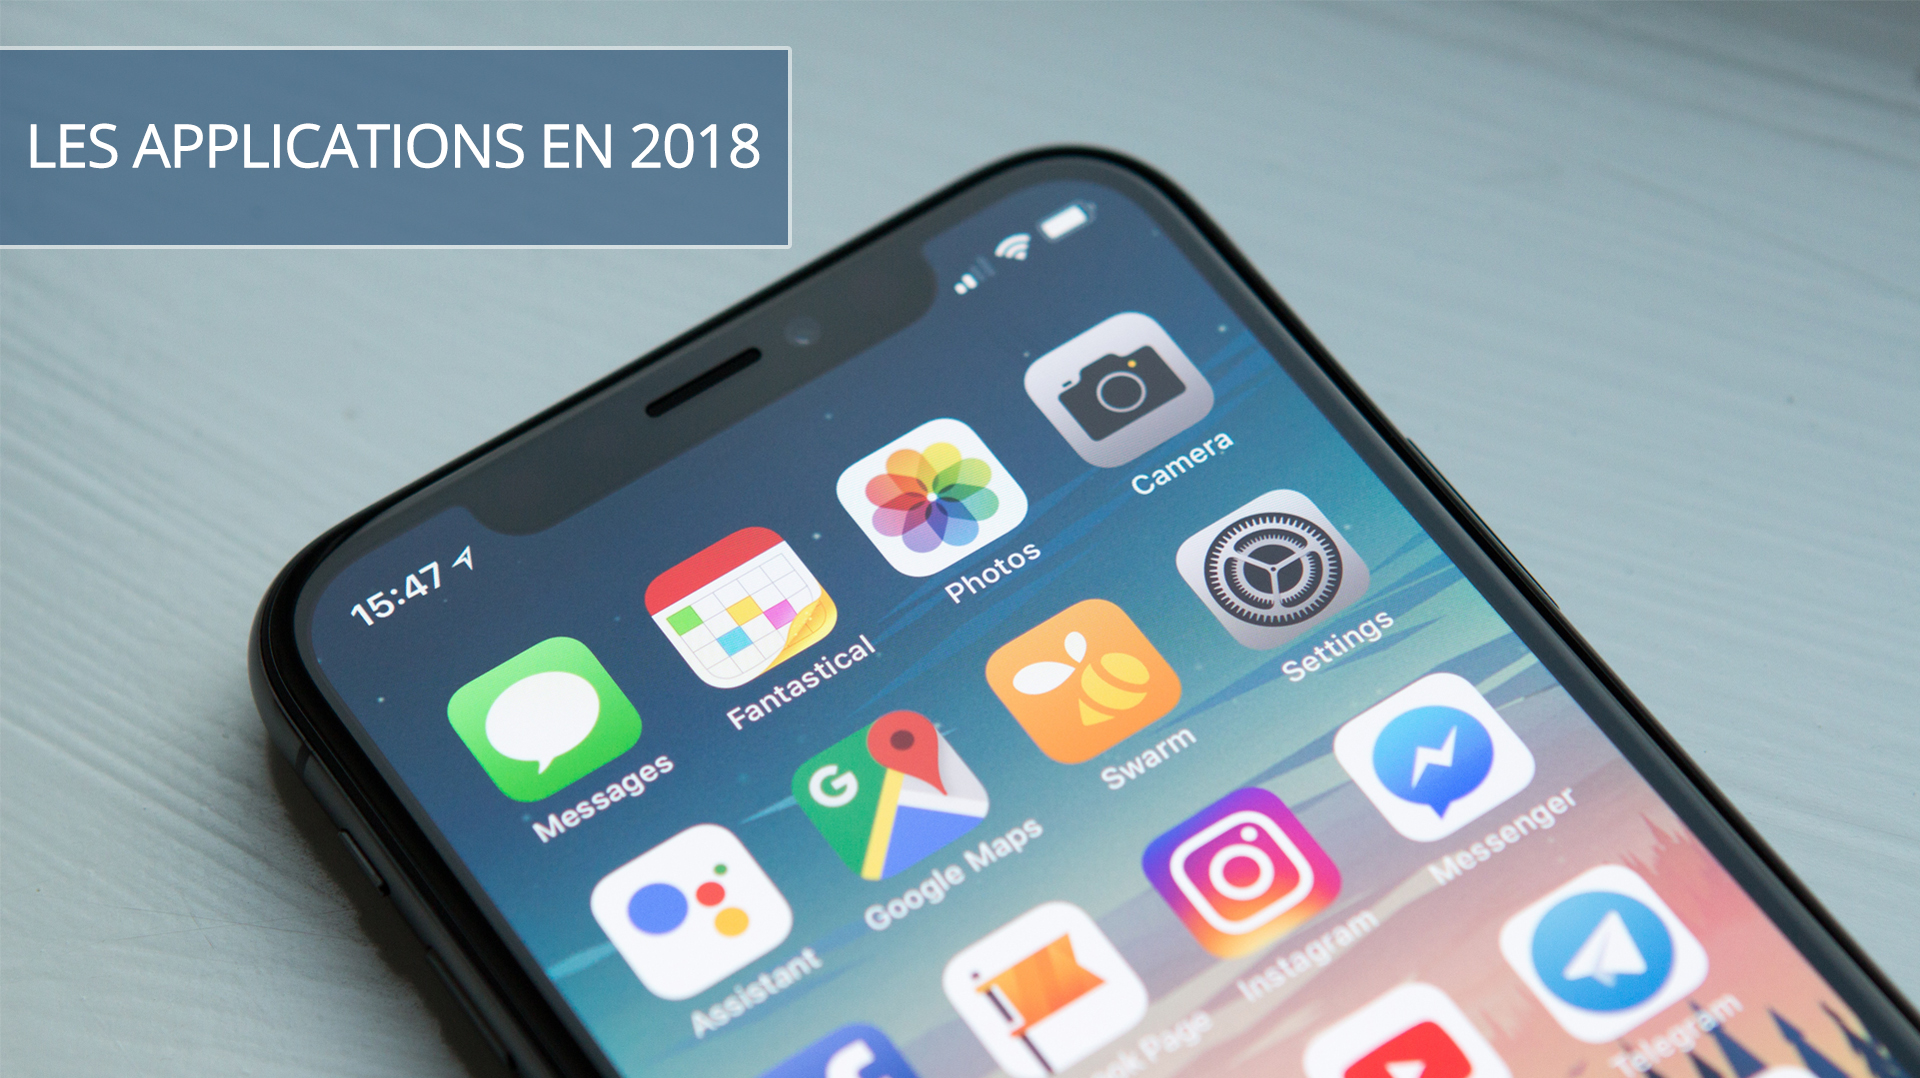 Illusatration Le meilleur des applications mobiles en 2018